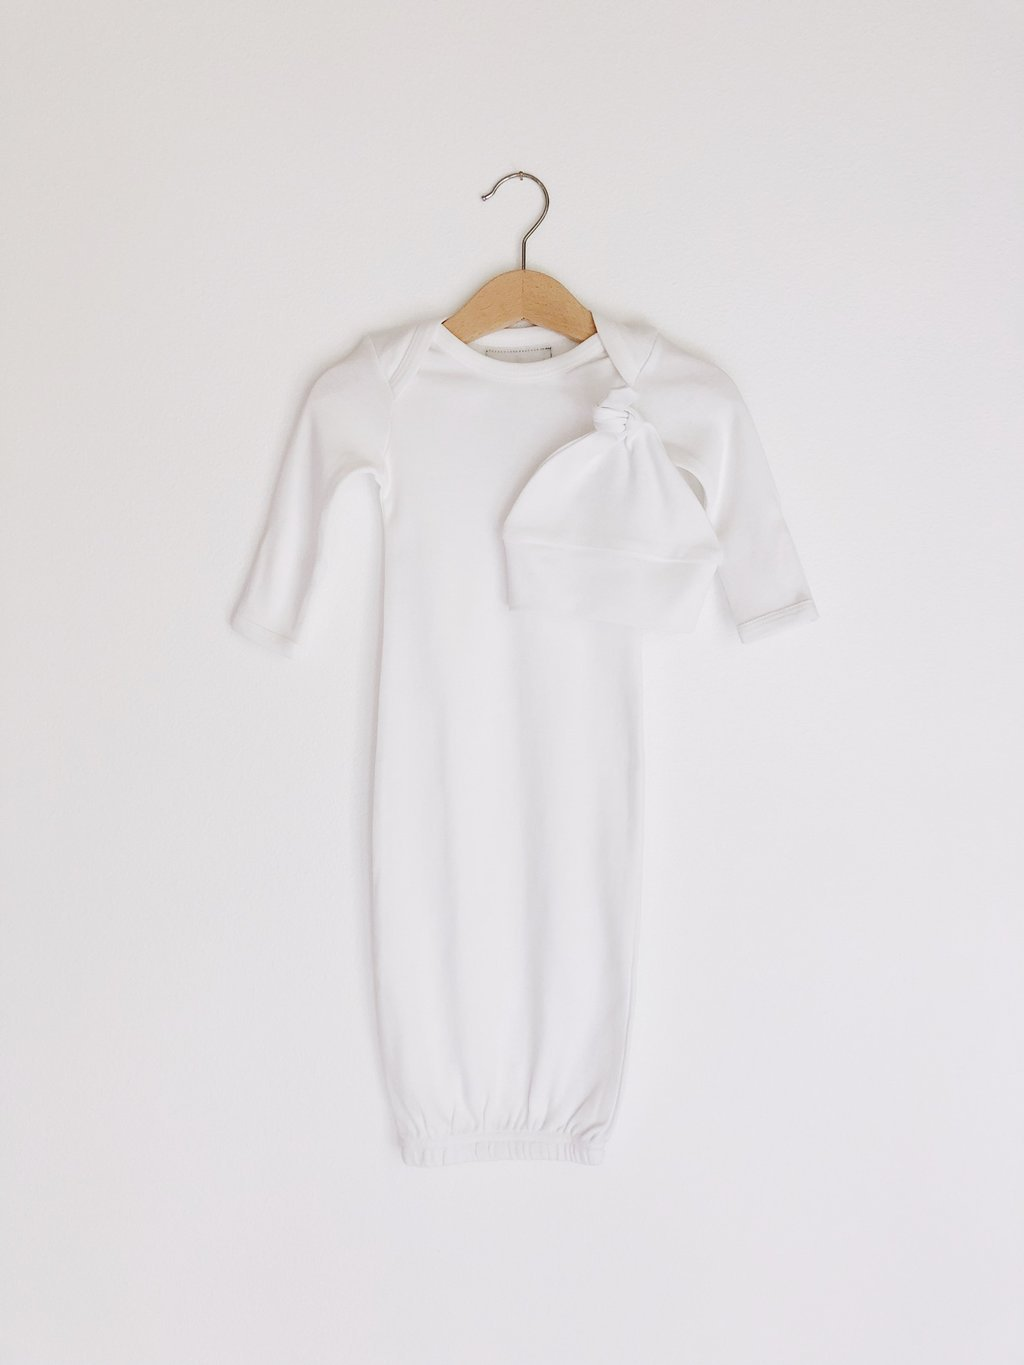 Organic Cotton Baby Sleeper Gown Set - Solid Colors – Hurleigh Lane